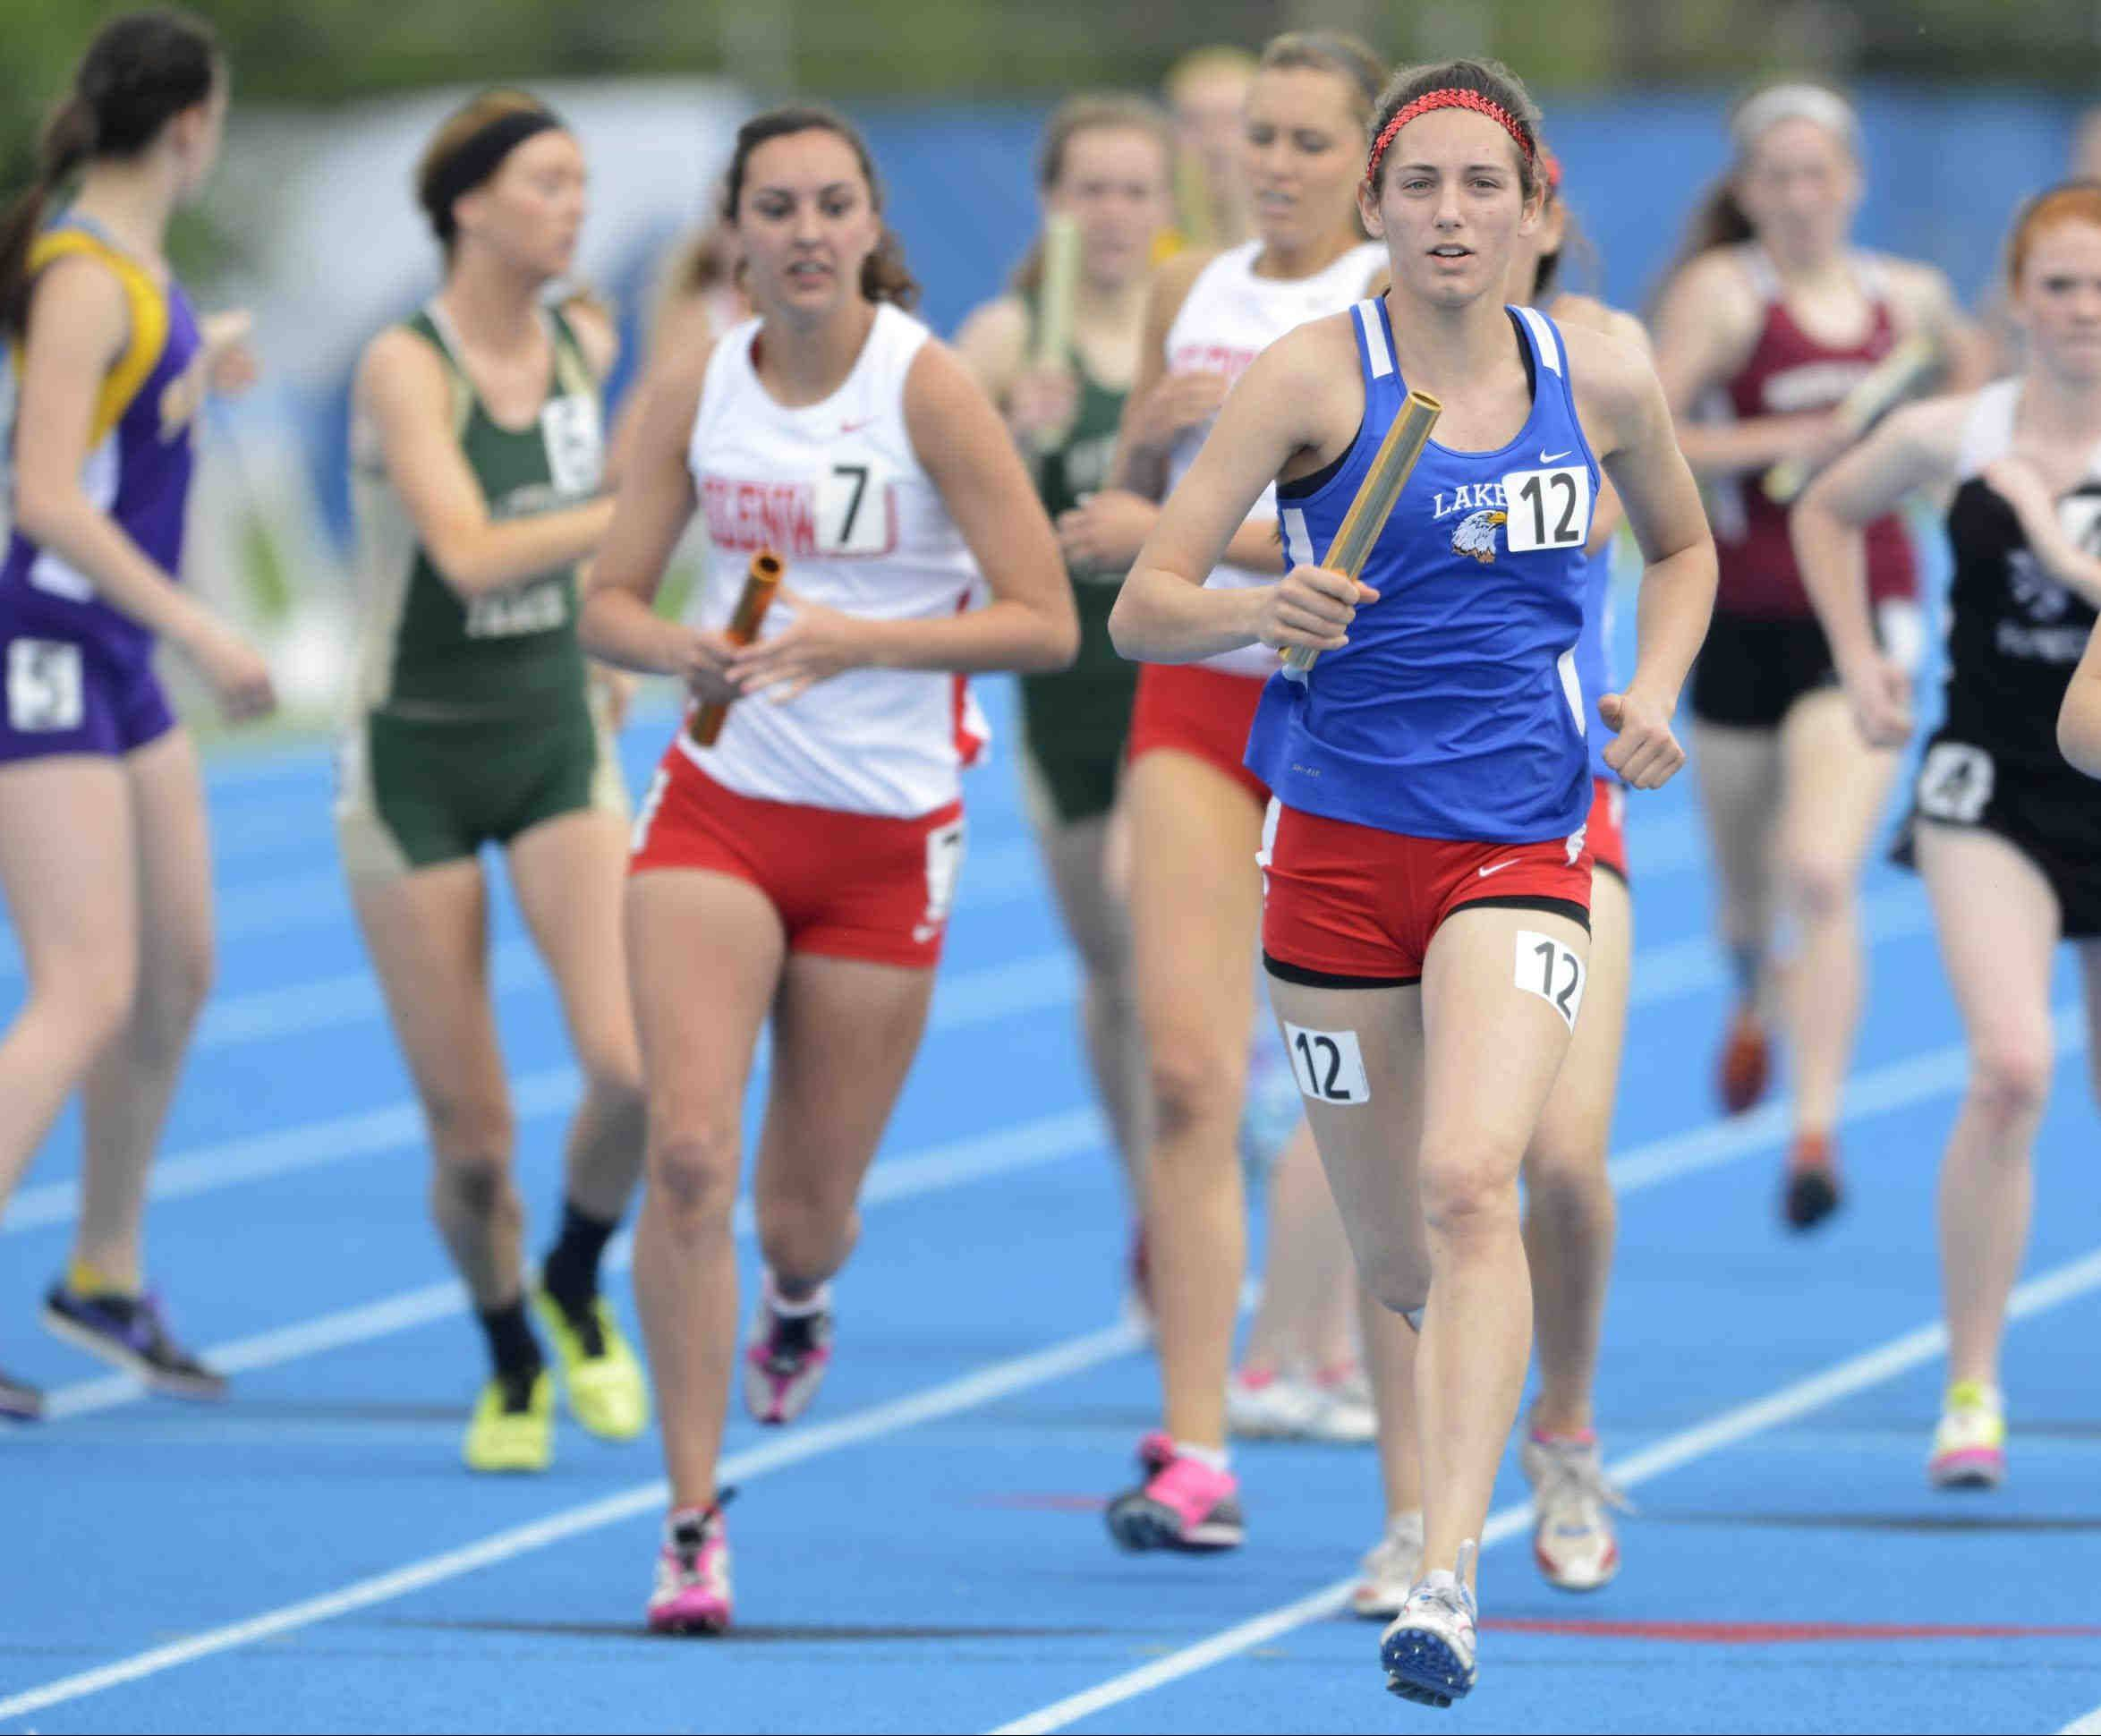 Lakes' Danielle Griesbaum takes the baton to a win on the anchor leg Saturday at the Class 2A 3,200-meter relay at the girls track and field state finals at O'Brien Stadium.